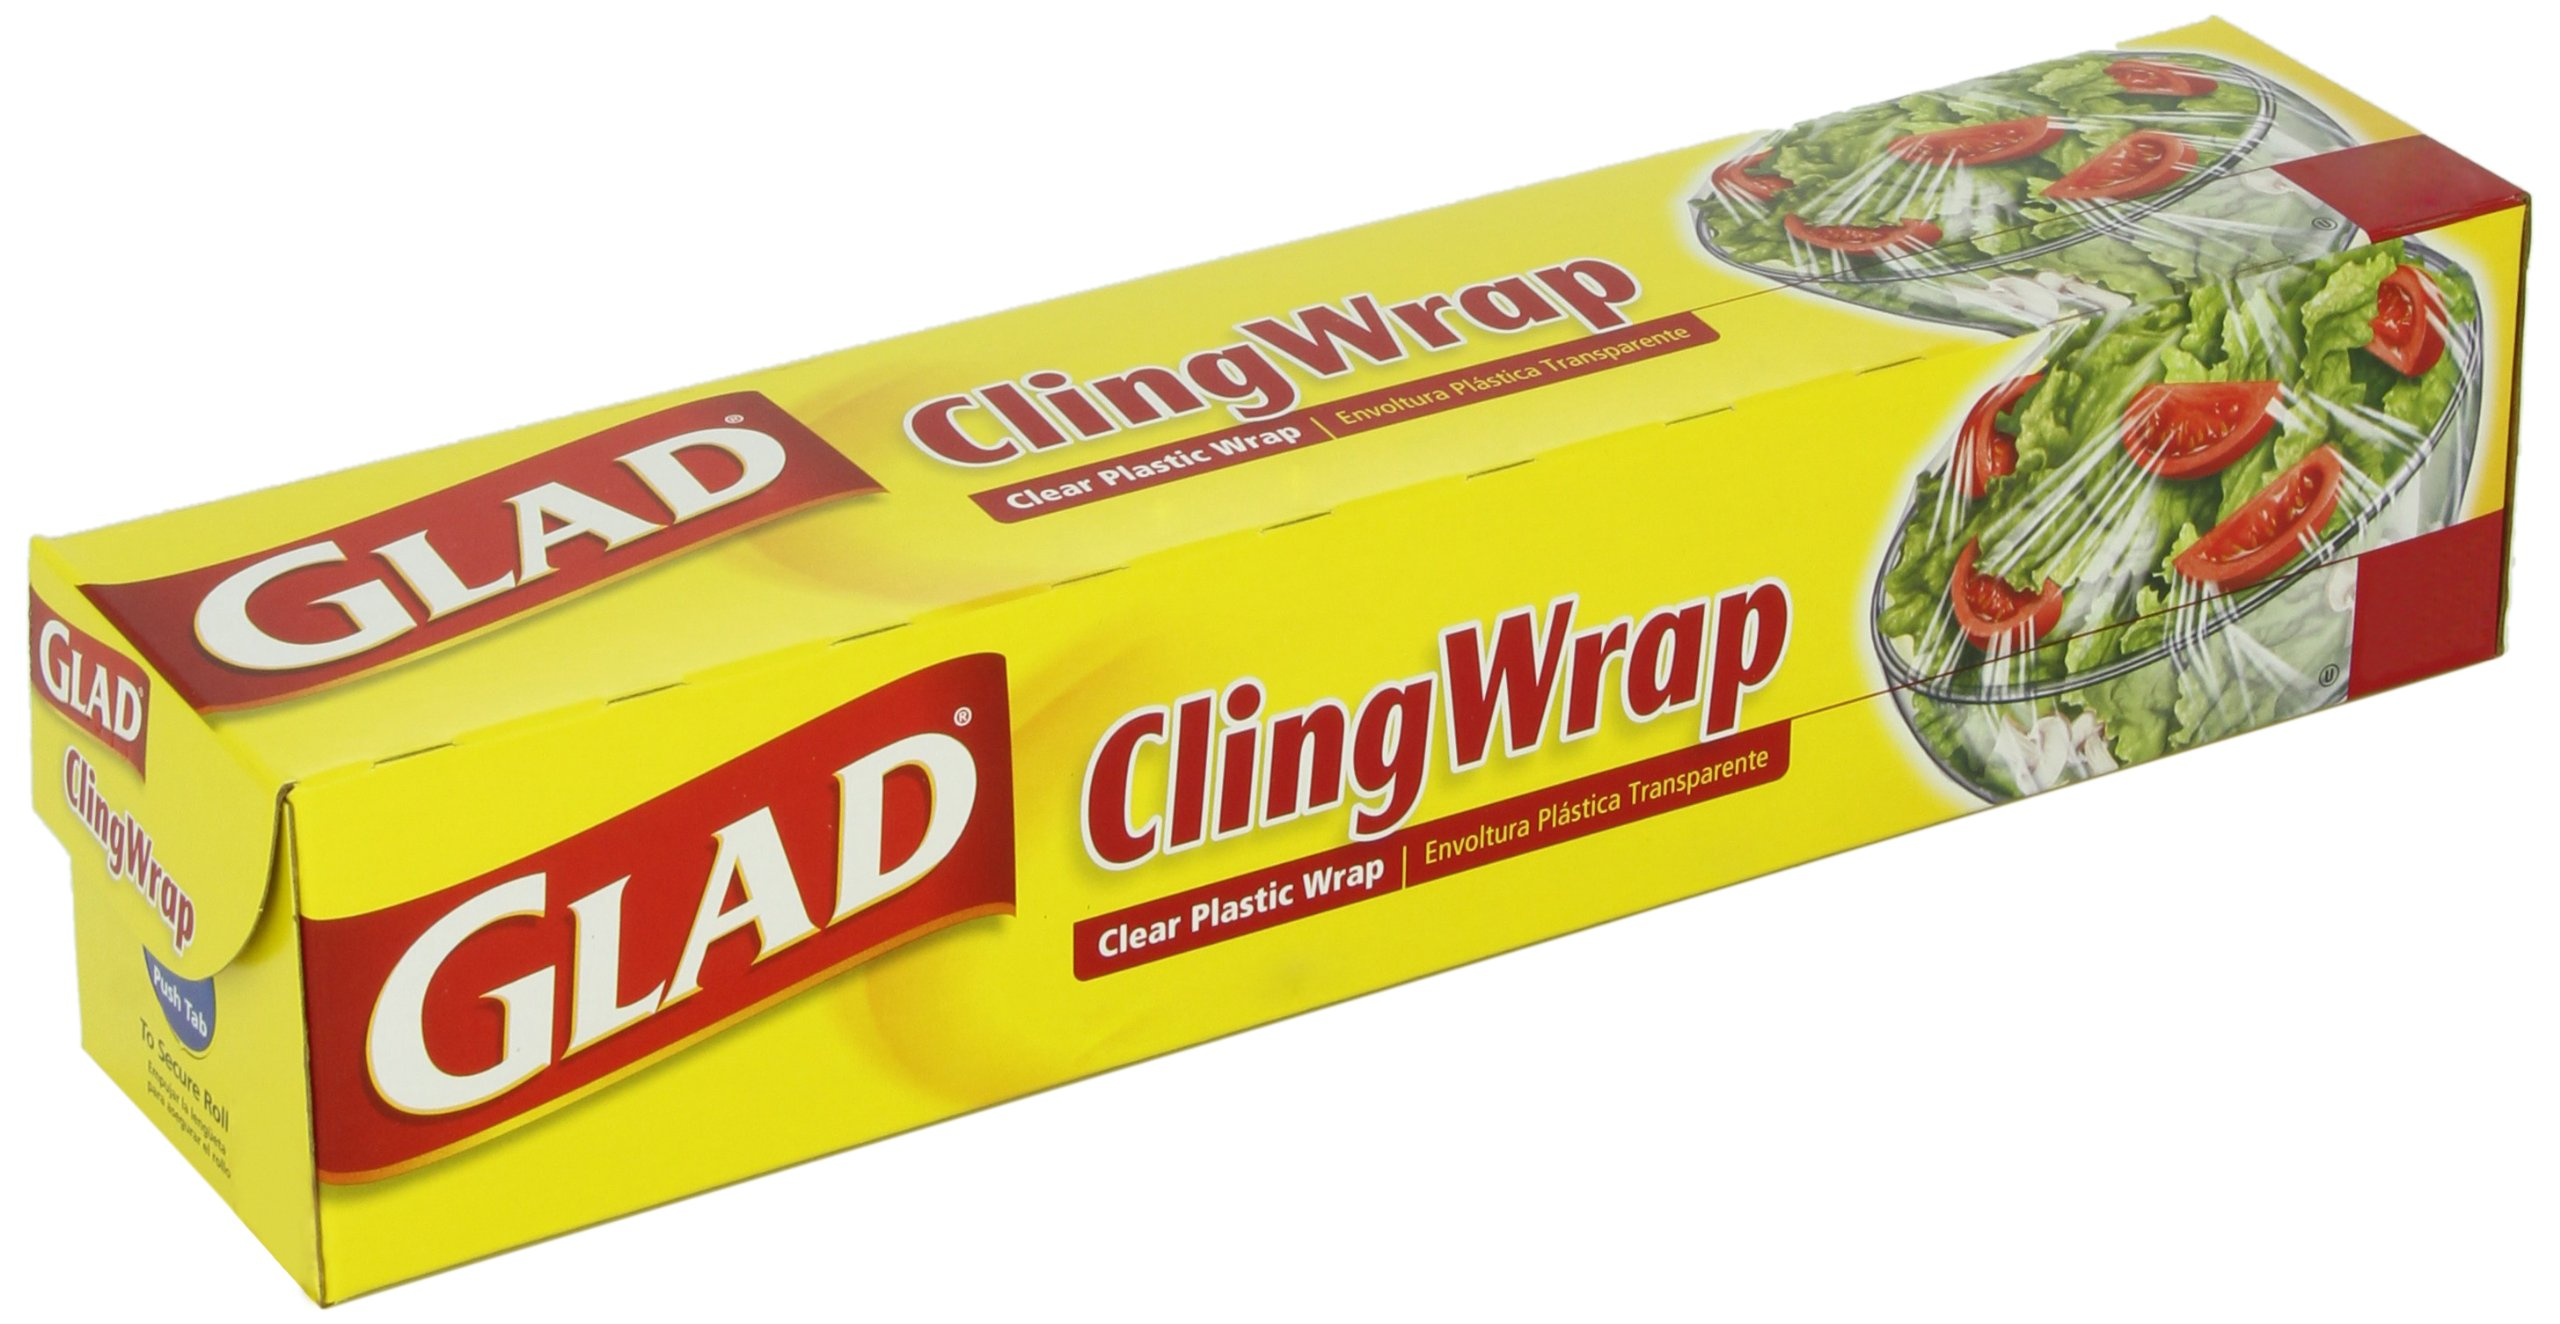 Money Maker Deal On Glad Cling Wrap At ShopRite!